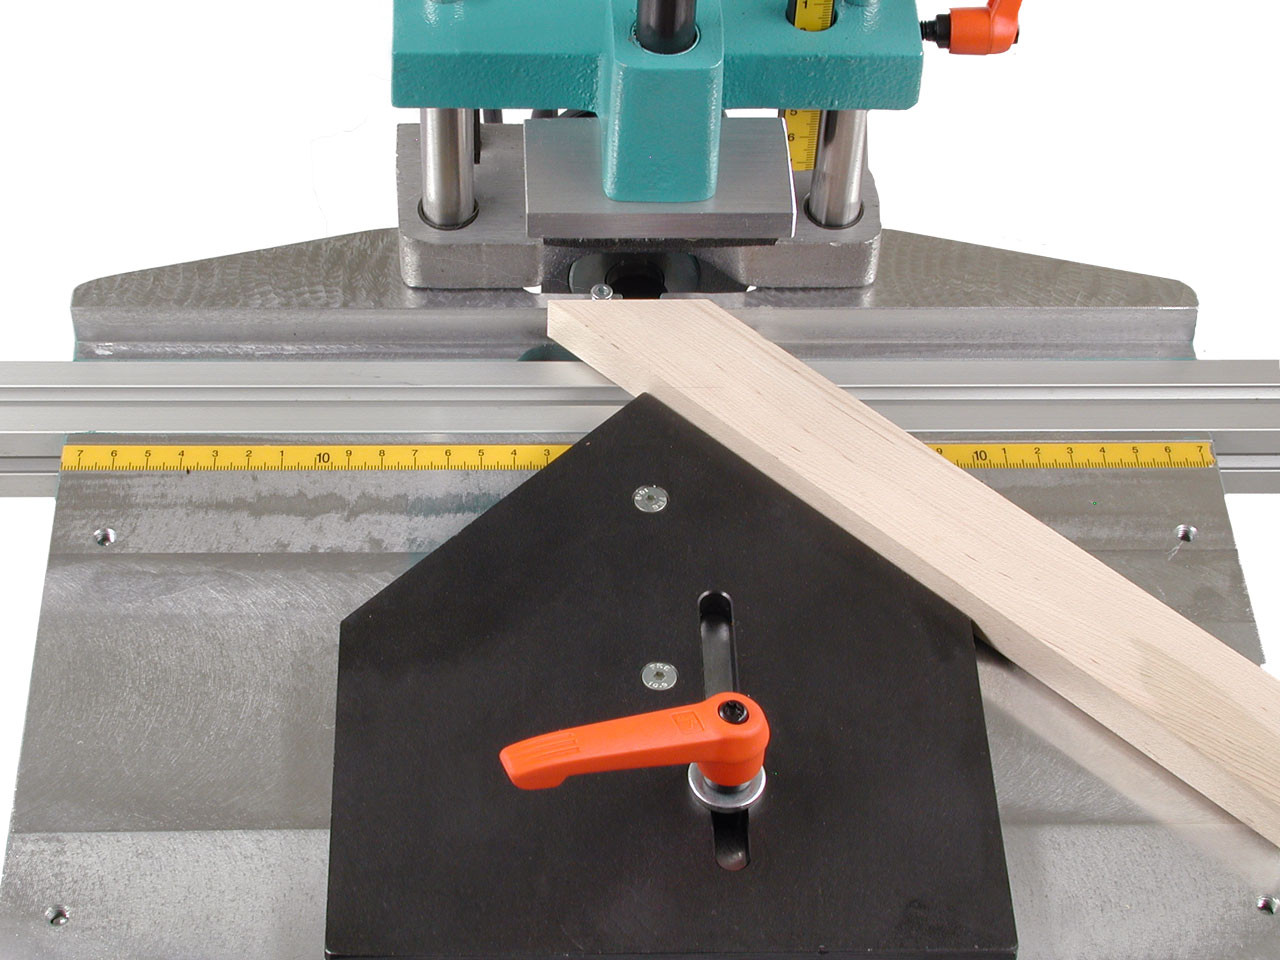 Hoffmann X18 - routing parts for a miter joint